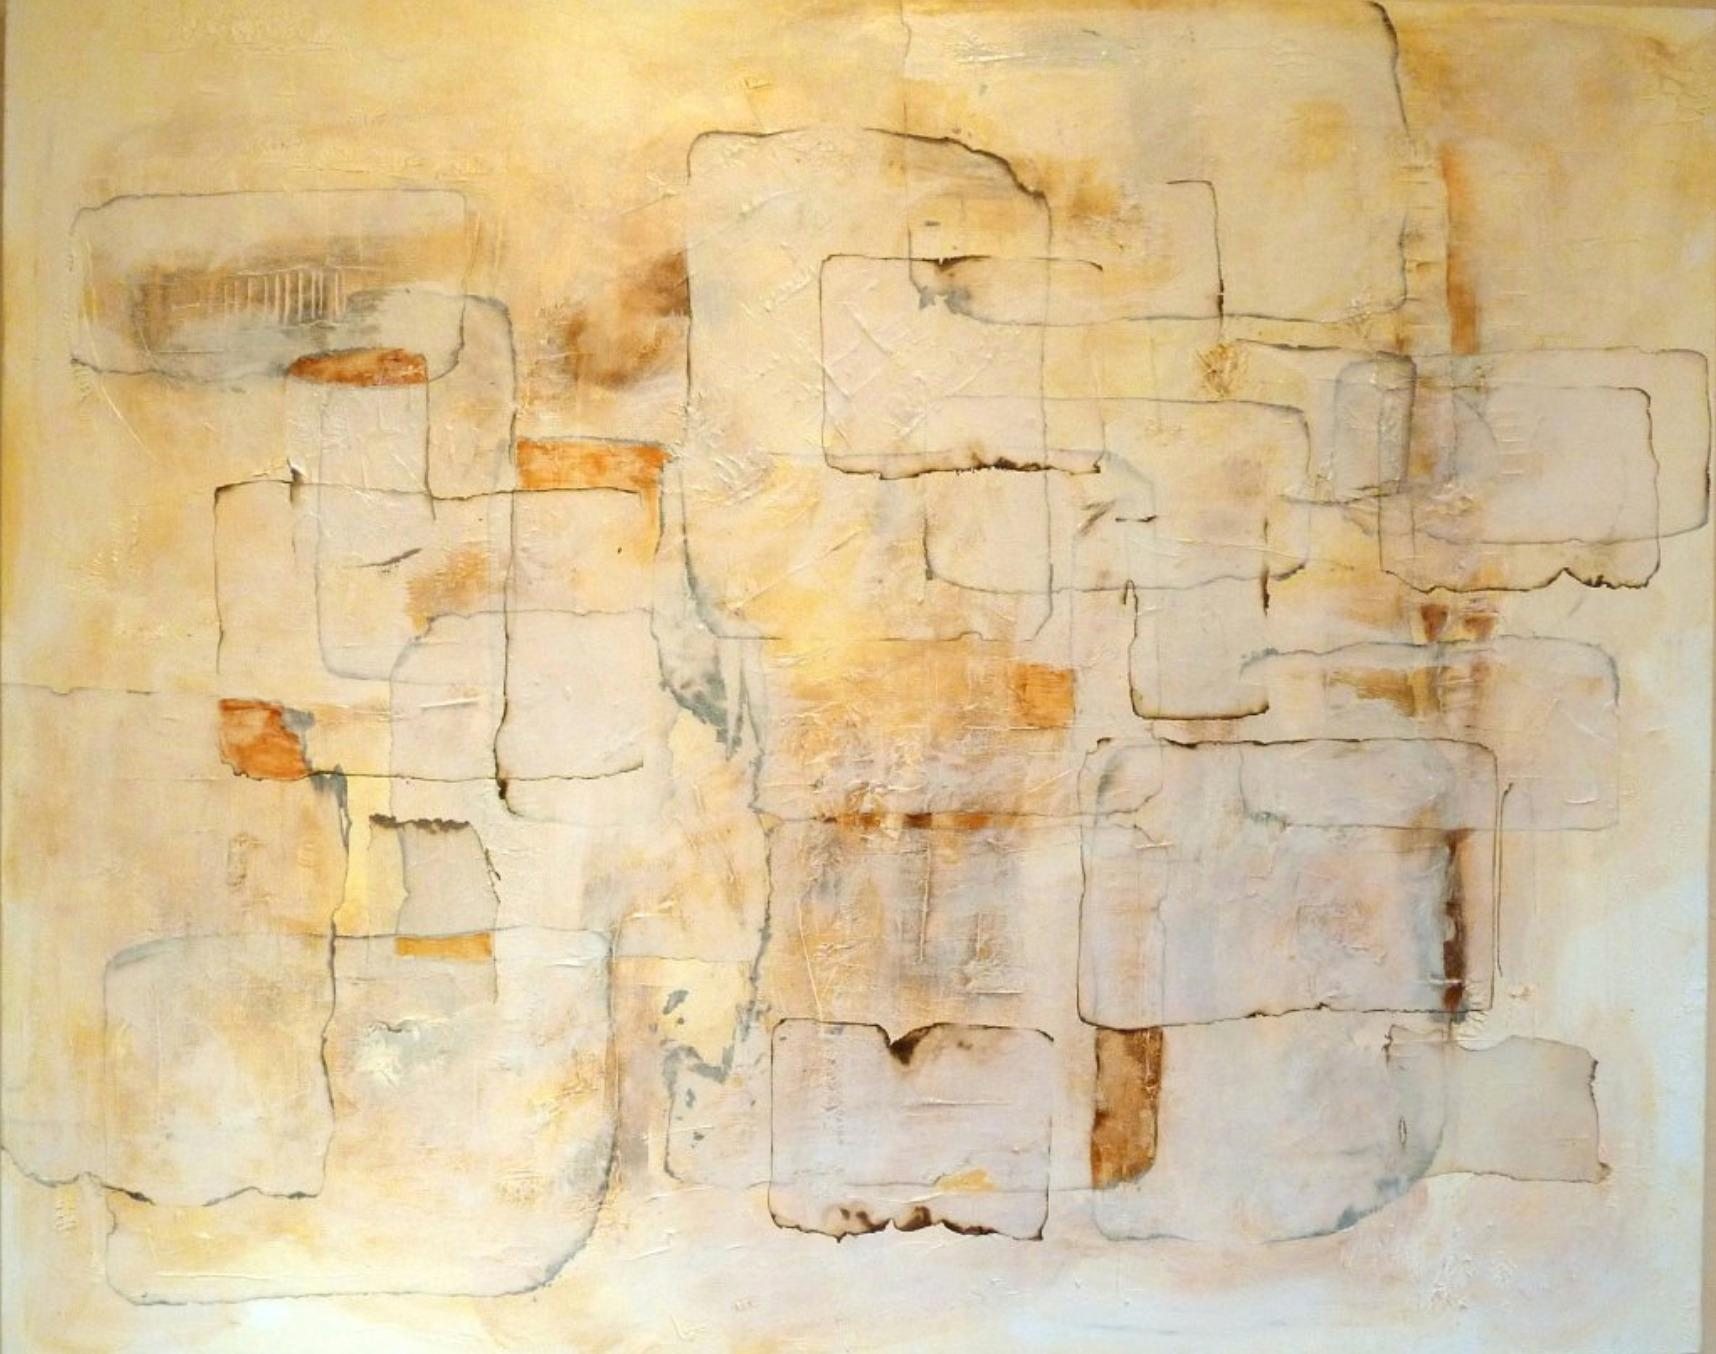 Resolution by Louis Shields, Abstract Mixed Media on Canvas, 2012